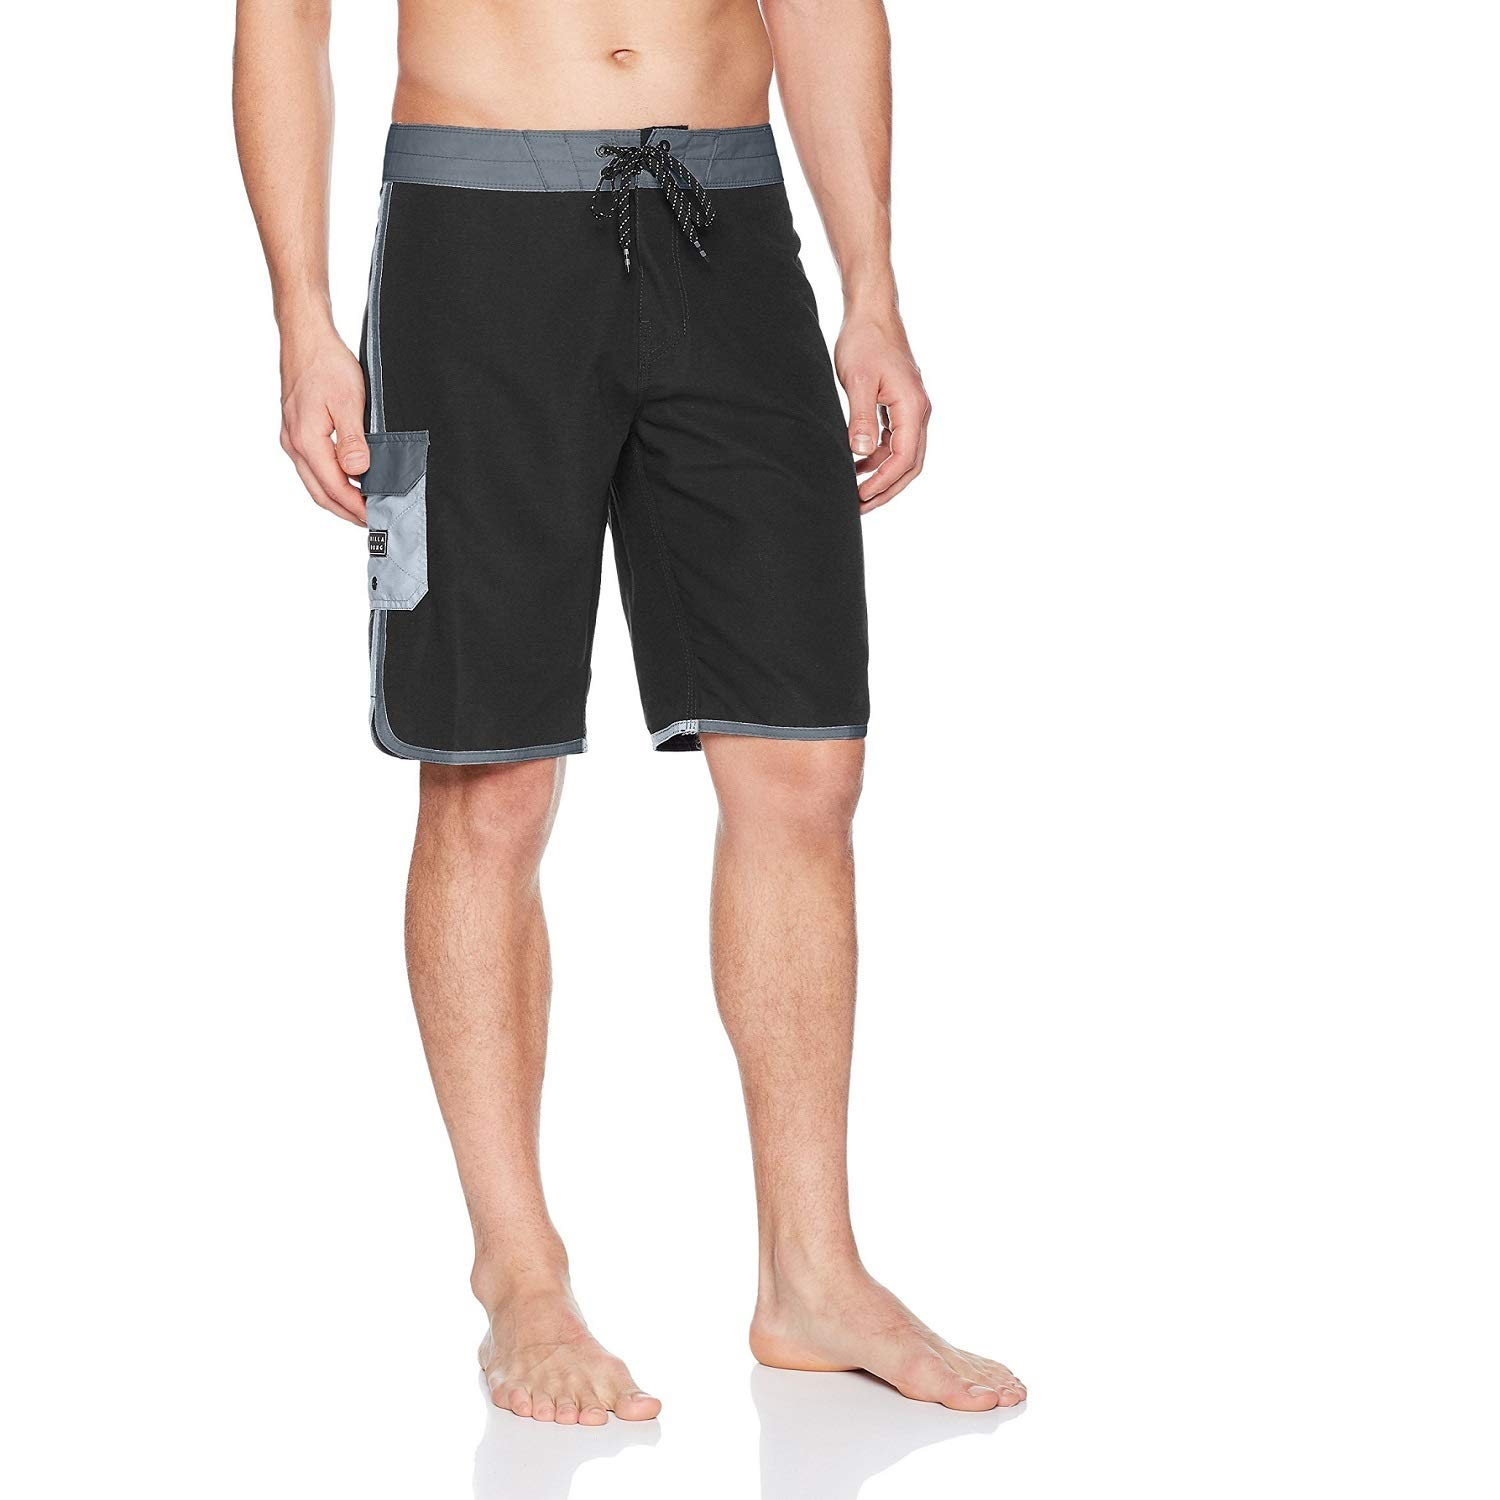 Billabong Men's Classic Wave 21 Inch Outseam Surf Suede Solid Boardshort